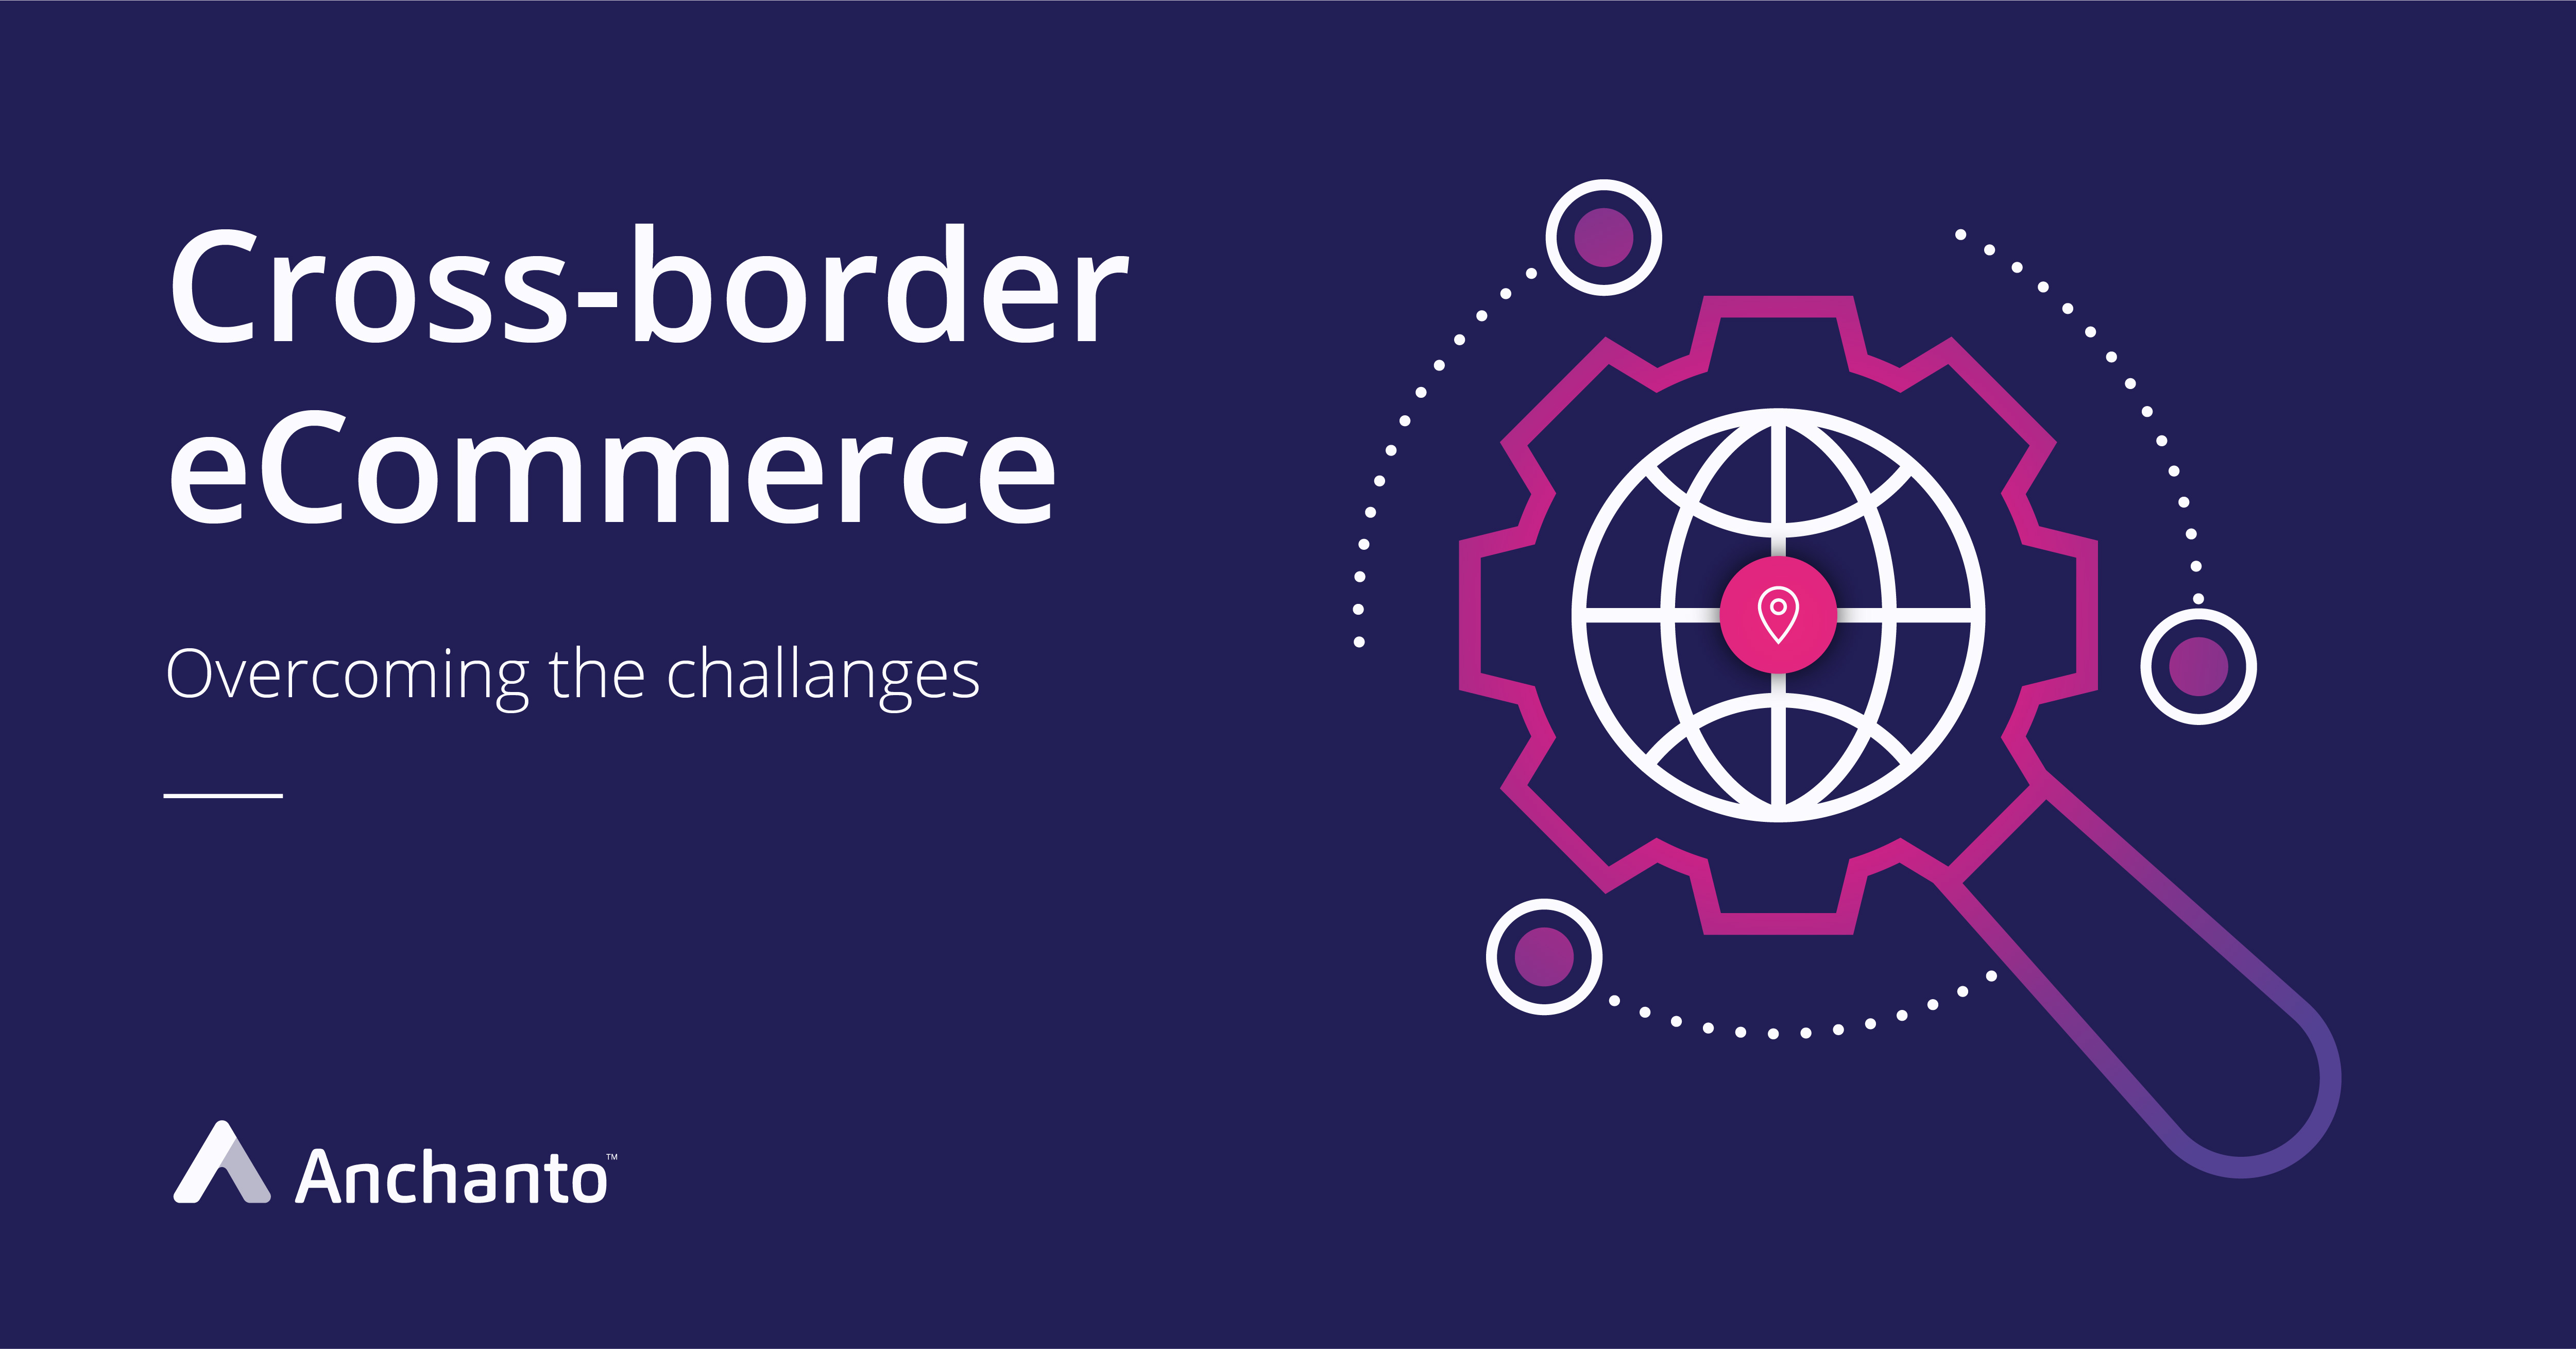 overcome the crossborder ecommerce challanges